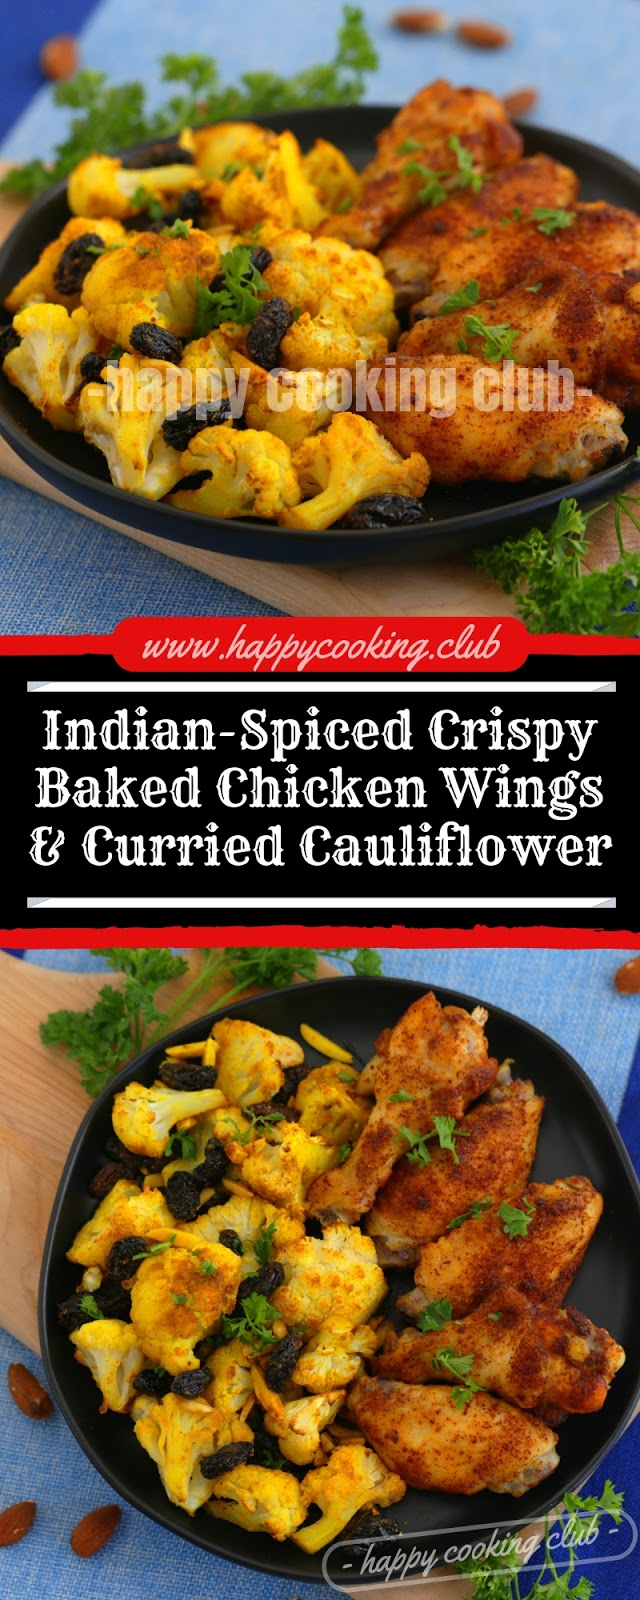 Indian-Spiced Crispy Baked Chicken Wings & Curried Cauliflower